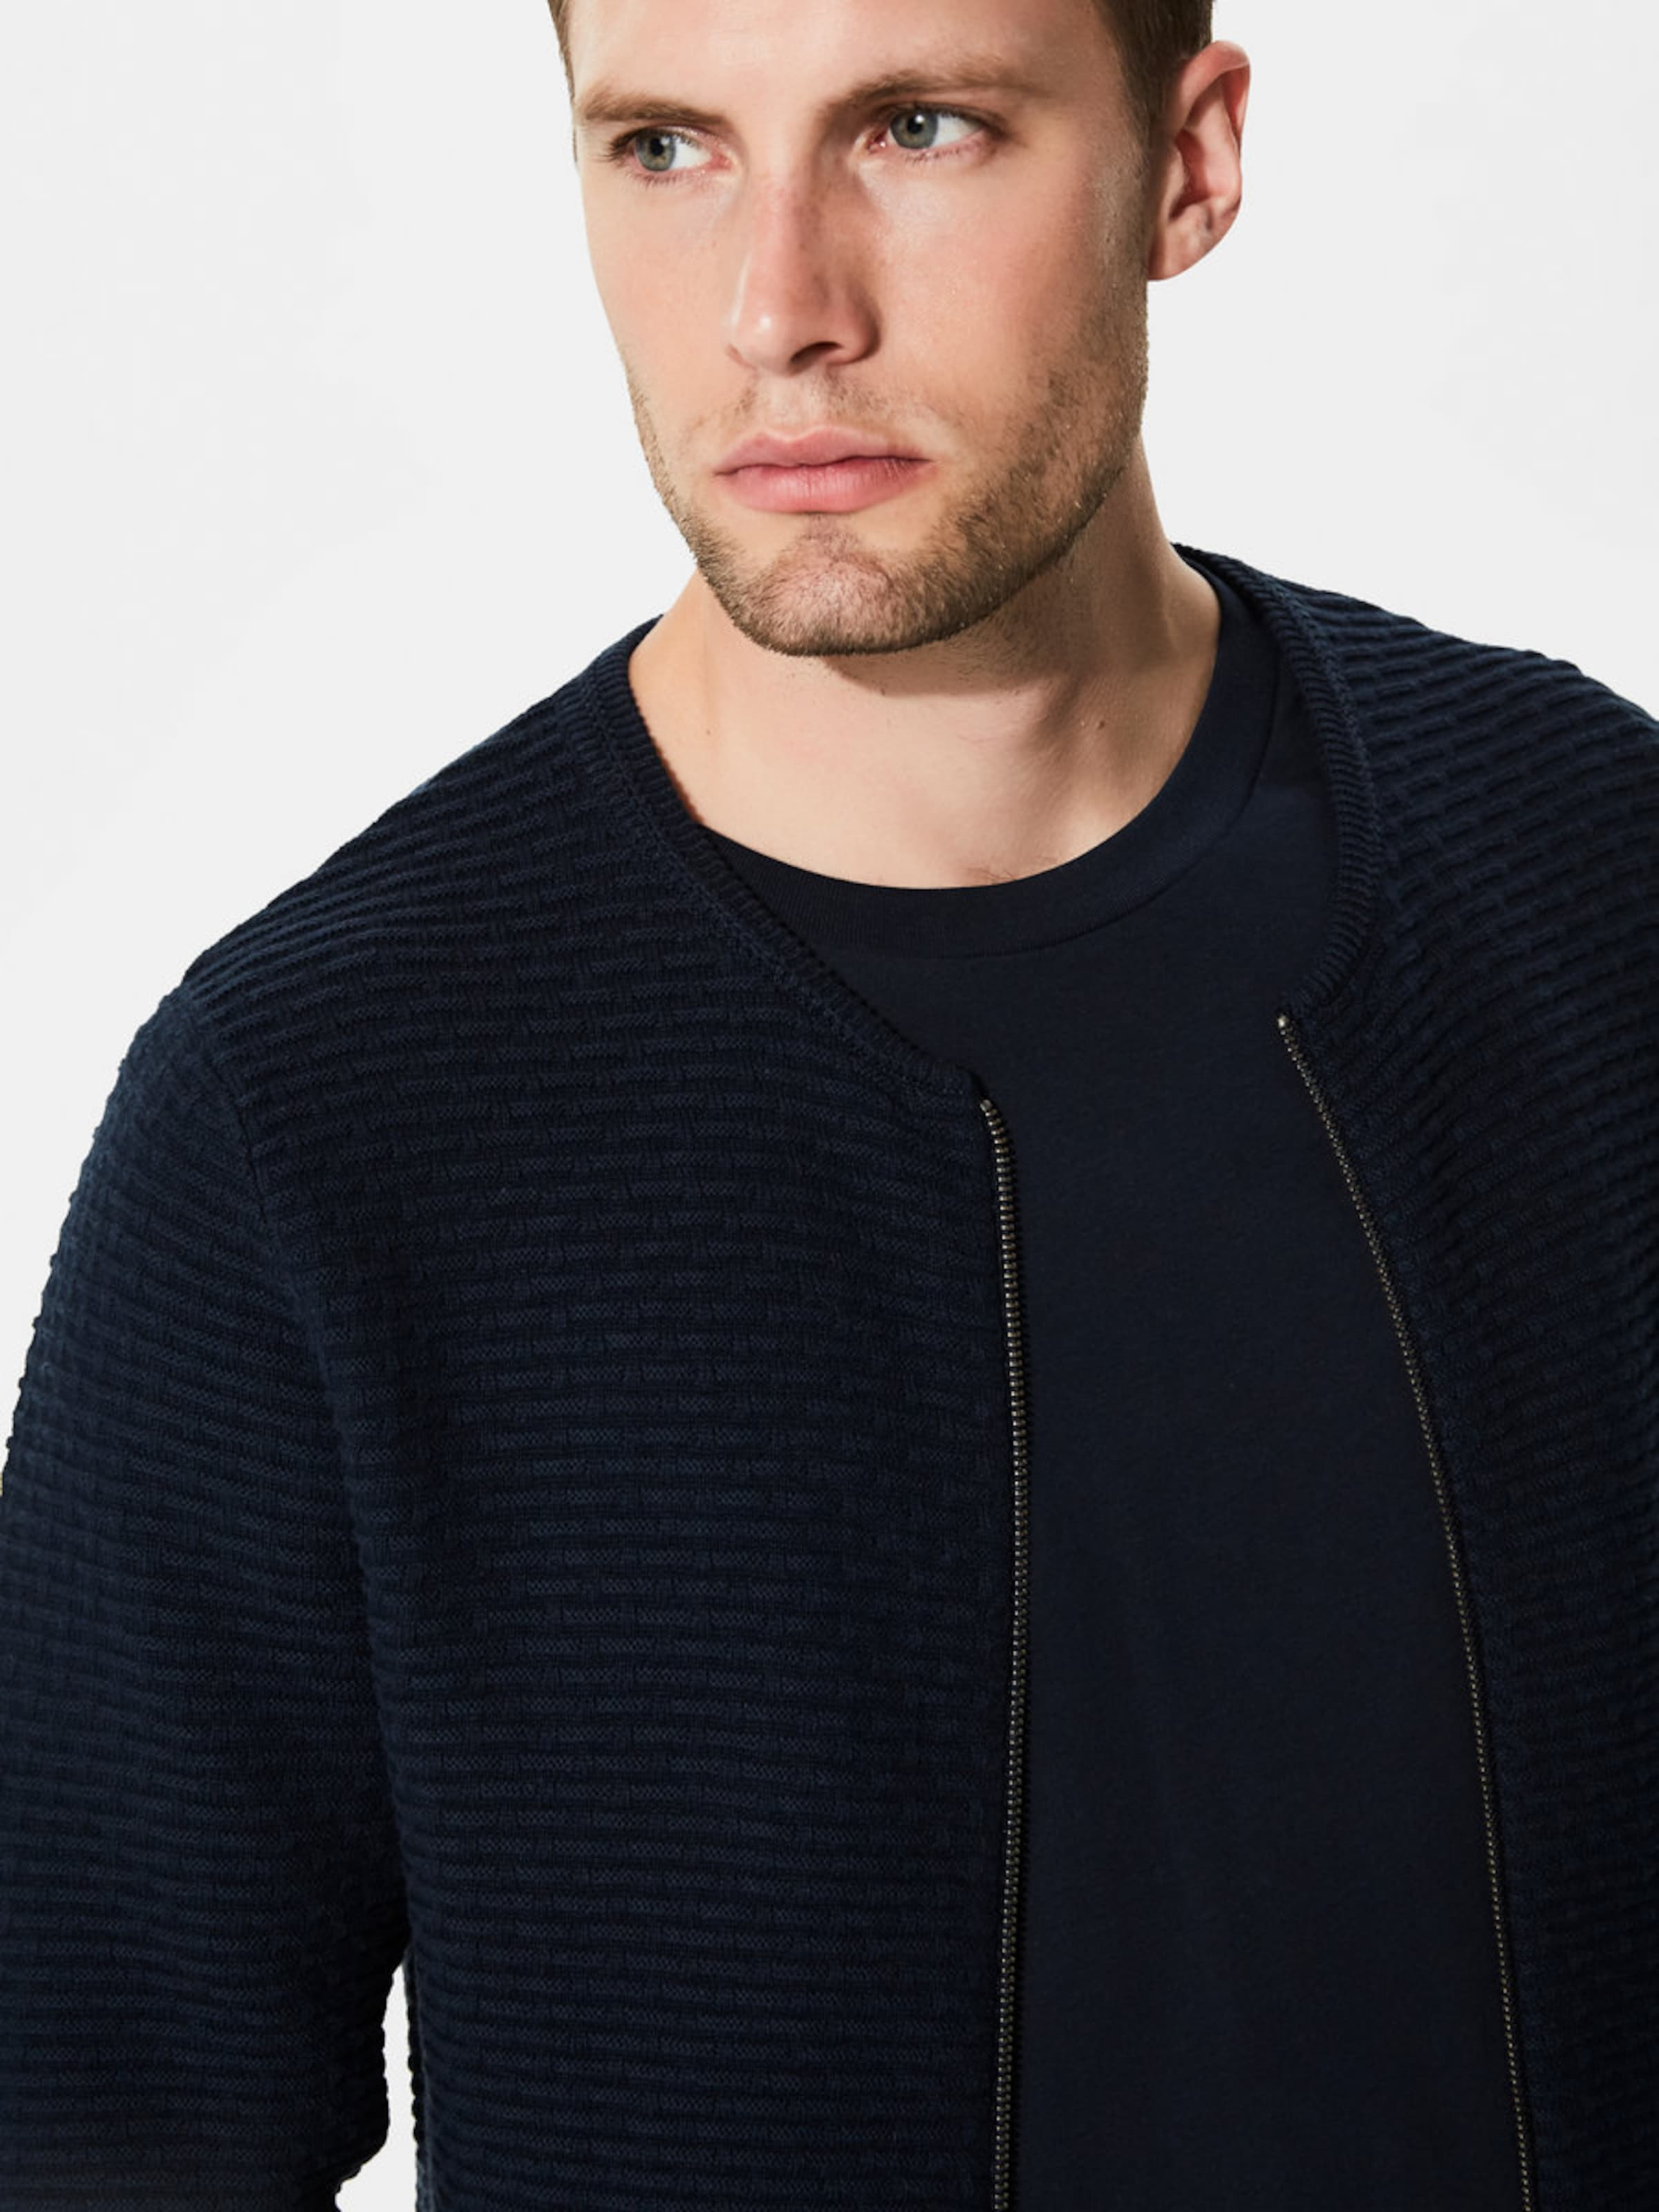 Verkauf Finish Verkauf In Mode SELECTED HOMME Strick-Cardigan 2JhNuBEUZb